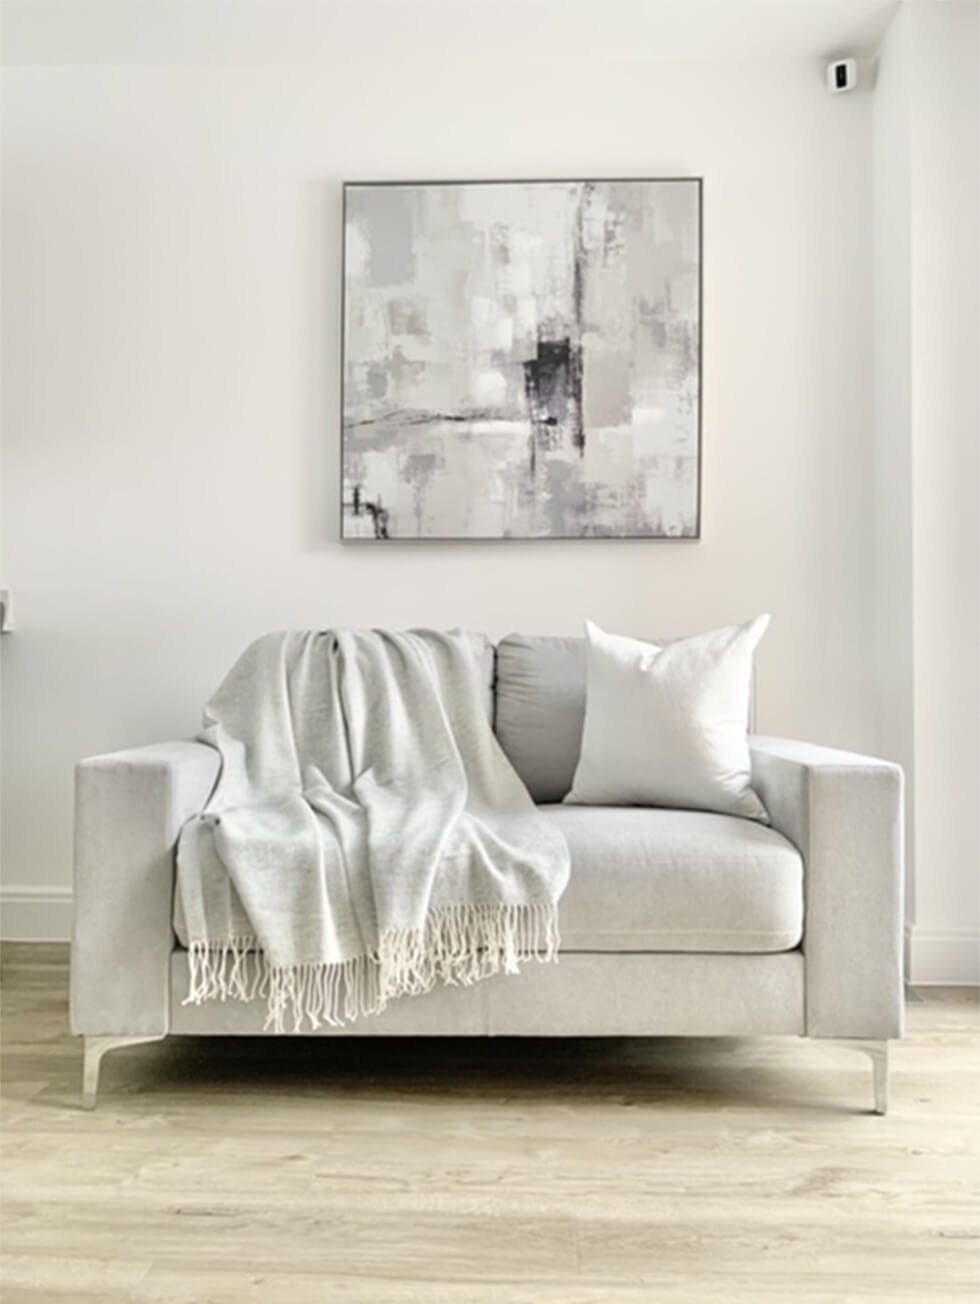 Modern light grey Baltimore sofa and abstract wall art above it